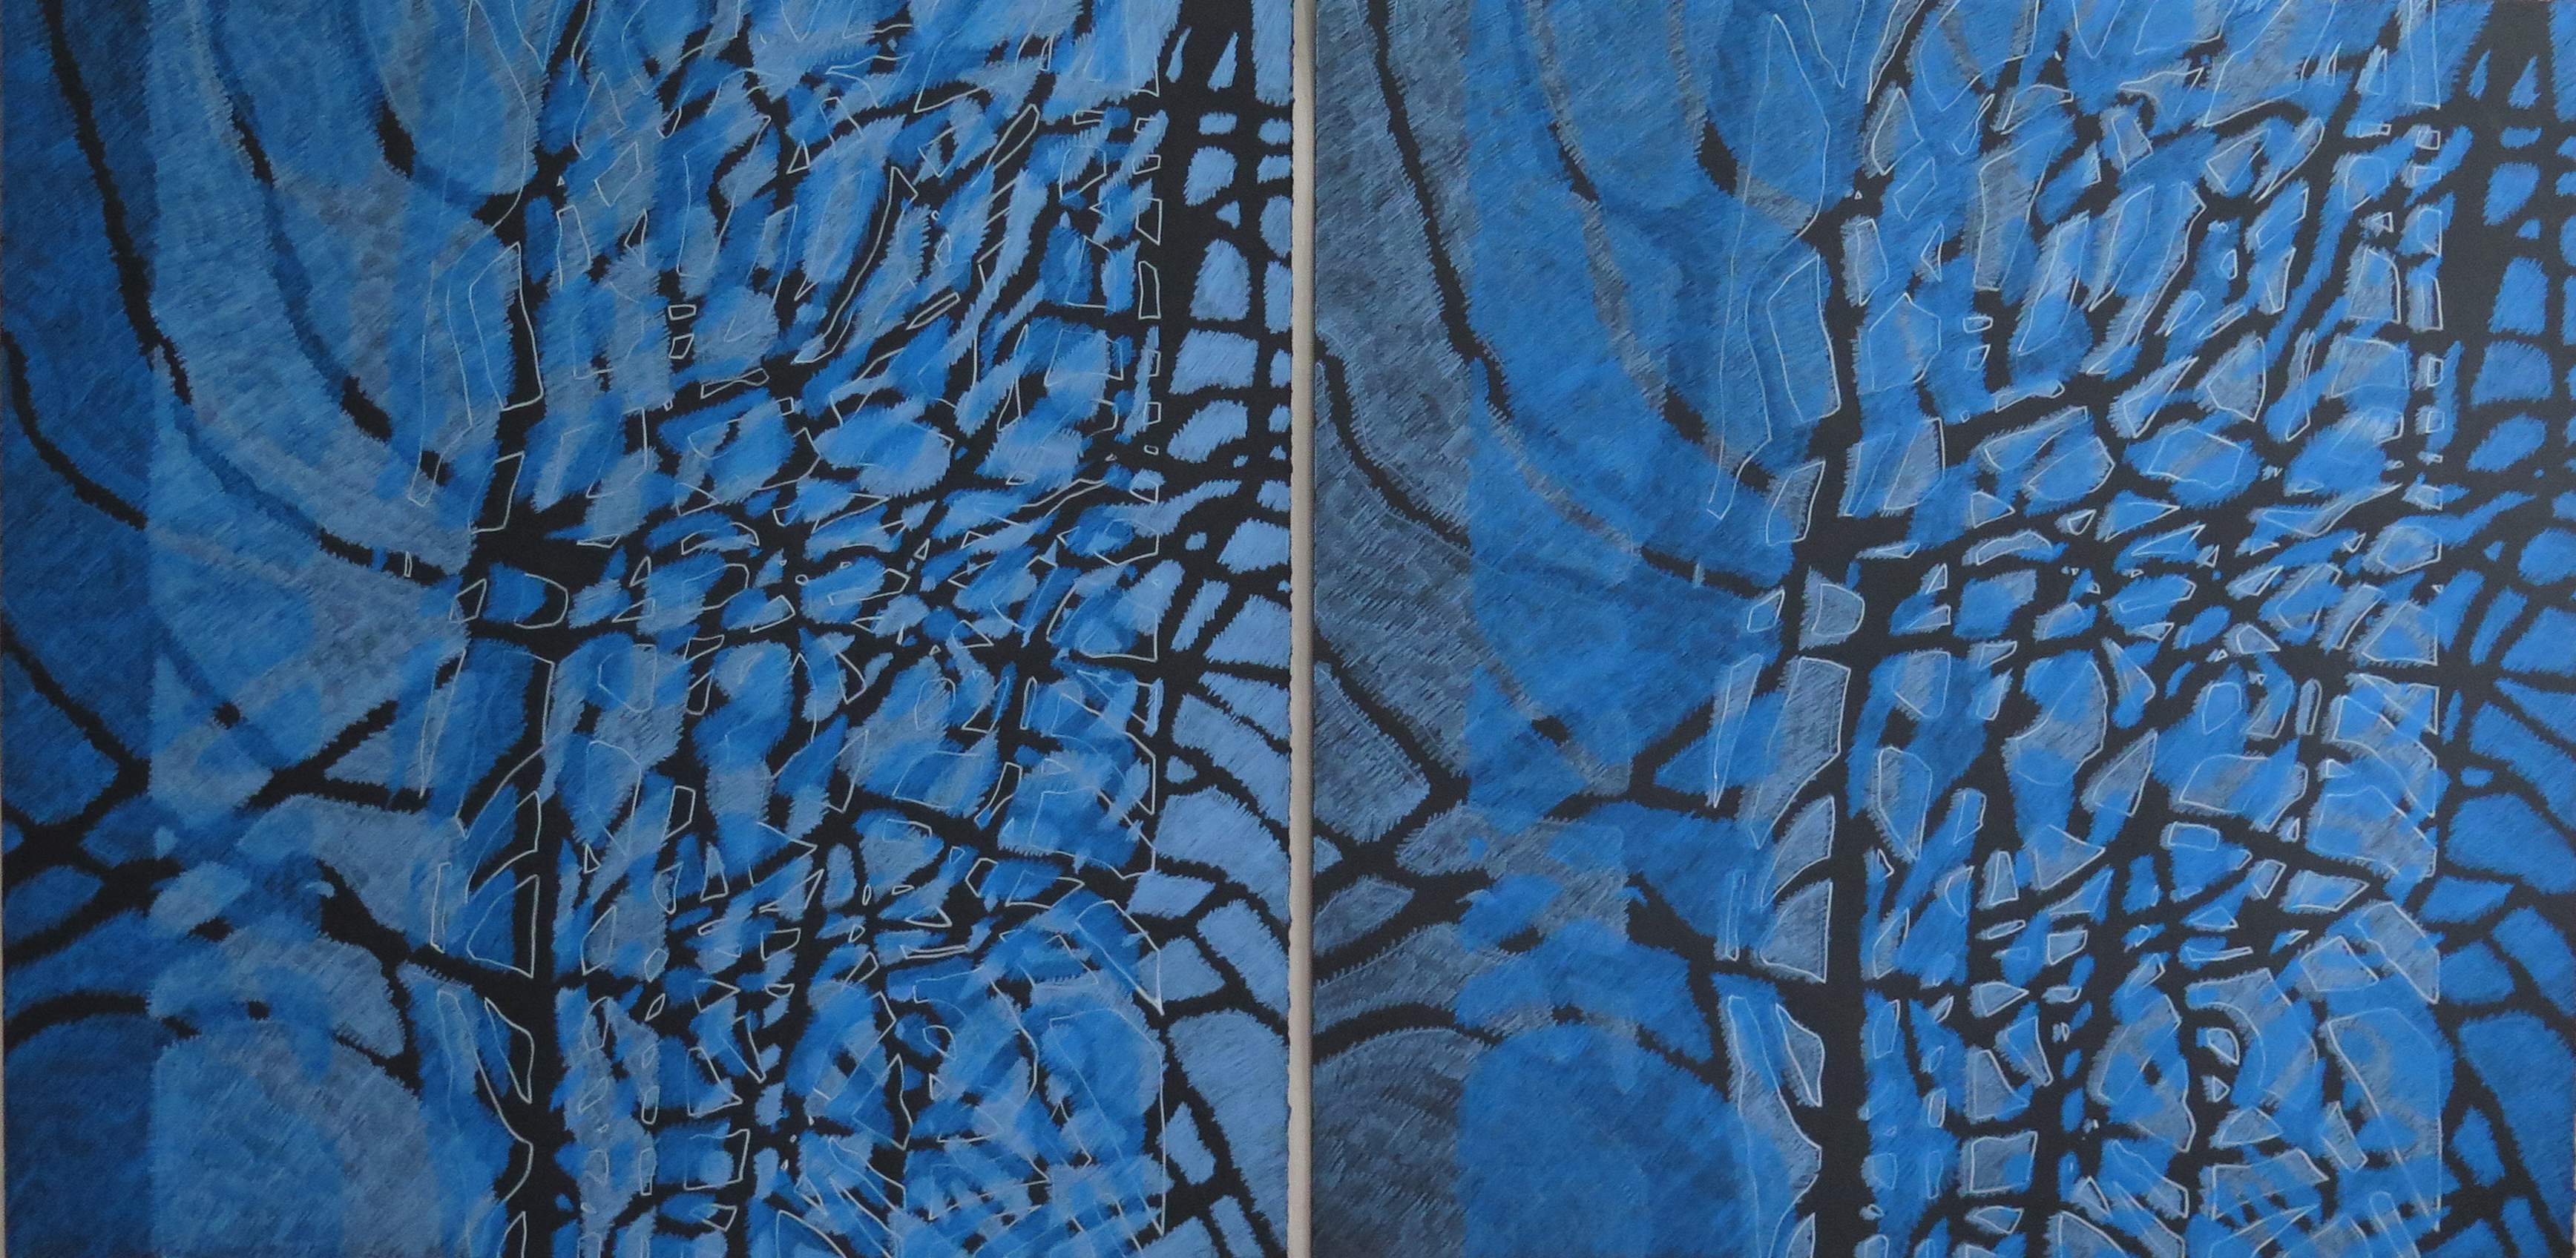 Lyn Horton Shift Series, 2019-20, cerulean blue light and cerulean blue and cerulean blue and cerulean blue light pair, 2020, 22.25 in h x 45 in w, colored pencil on black rag paper